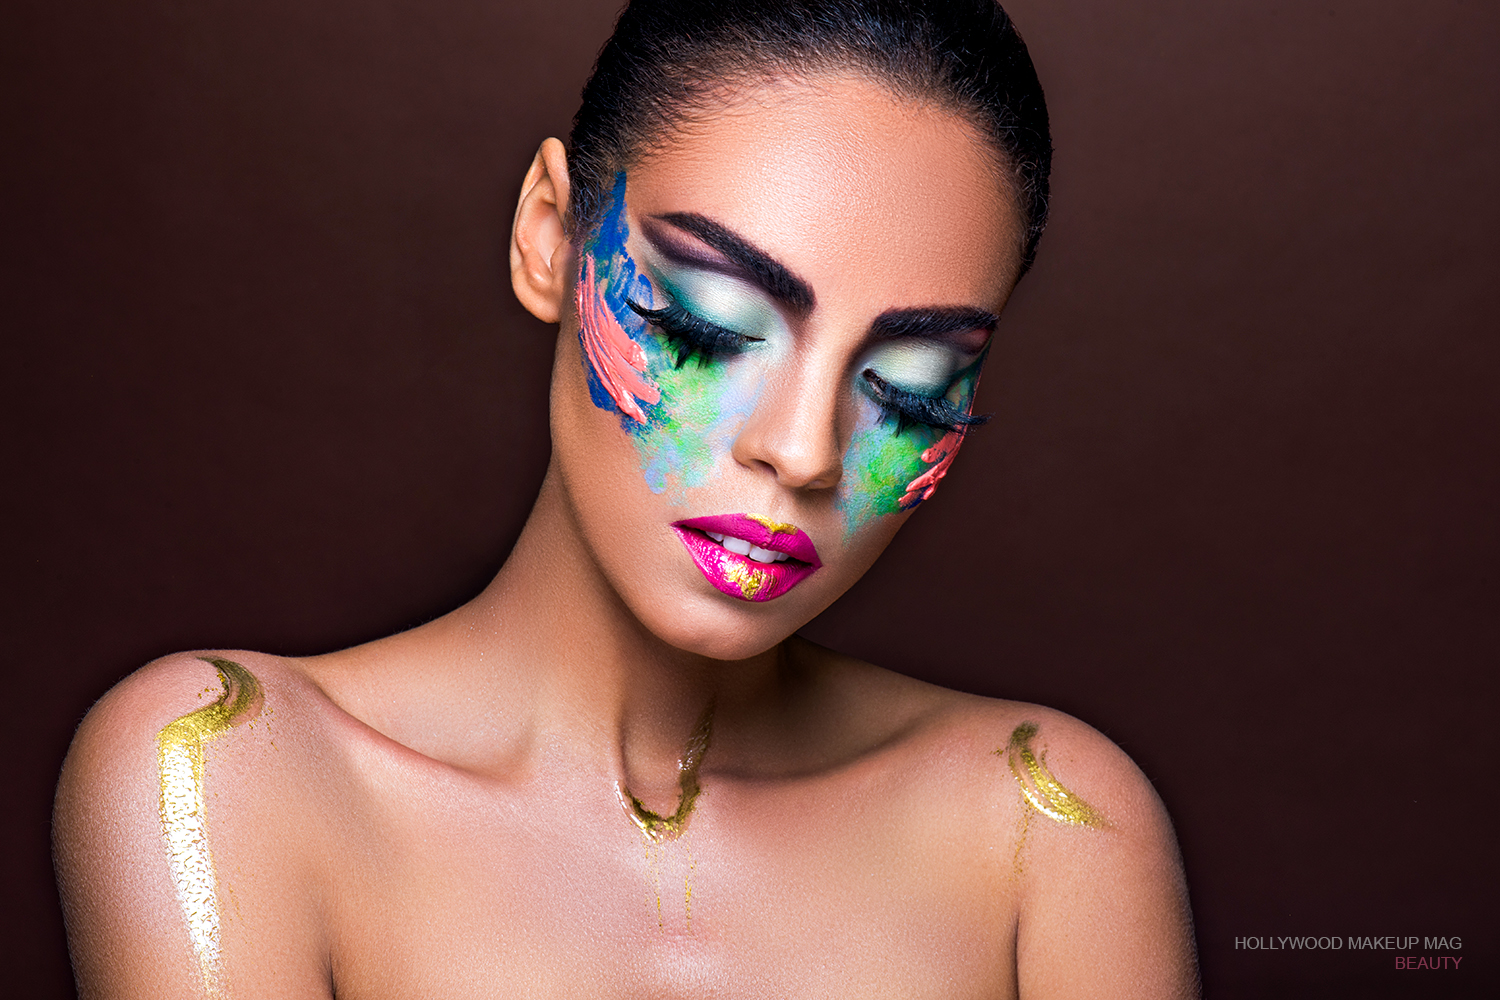 Avantgarde bright creative celebrity beauty makeup artist Agne Skaringa hollywood Tomas Skaringa.jpg